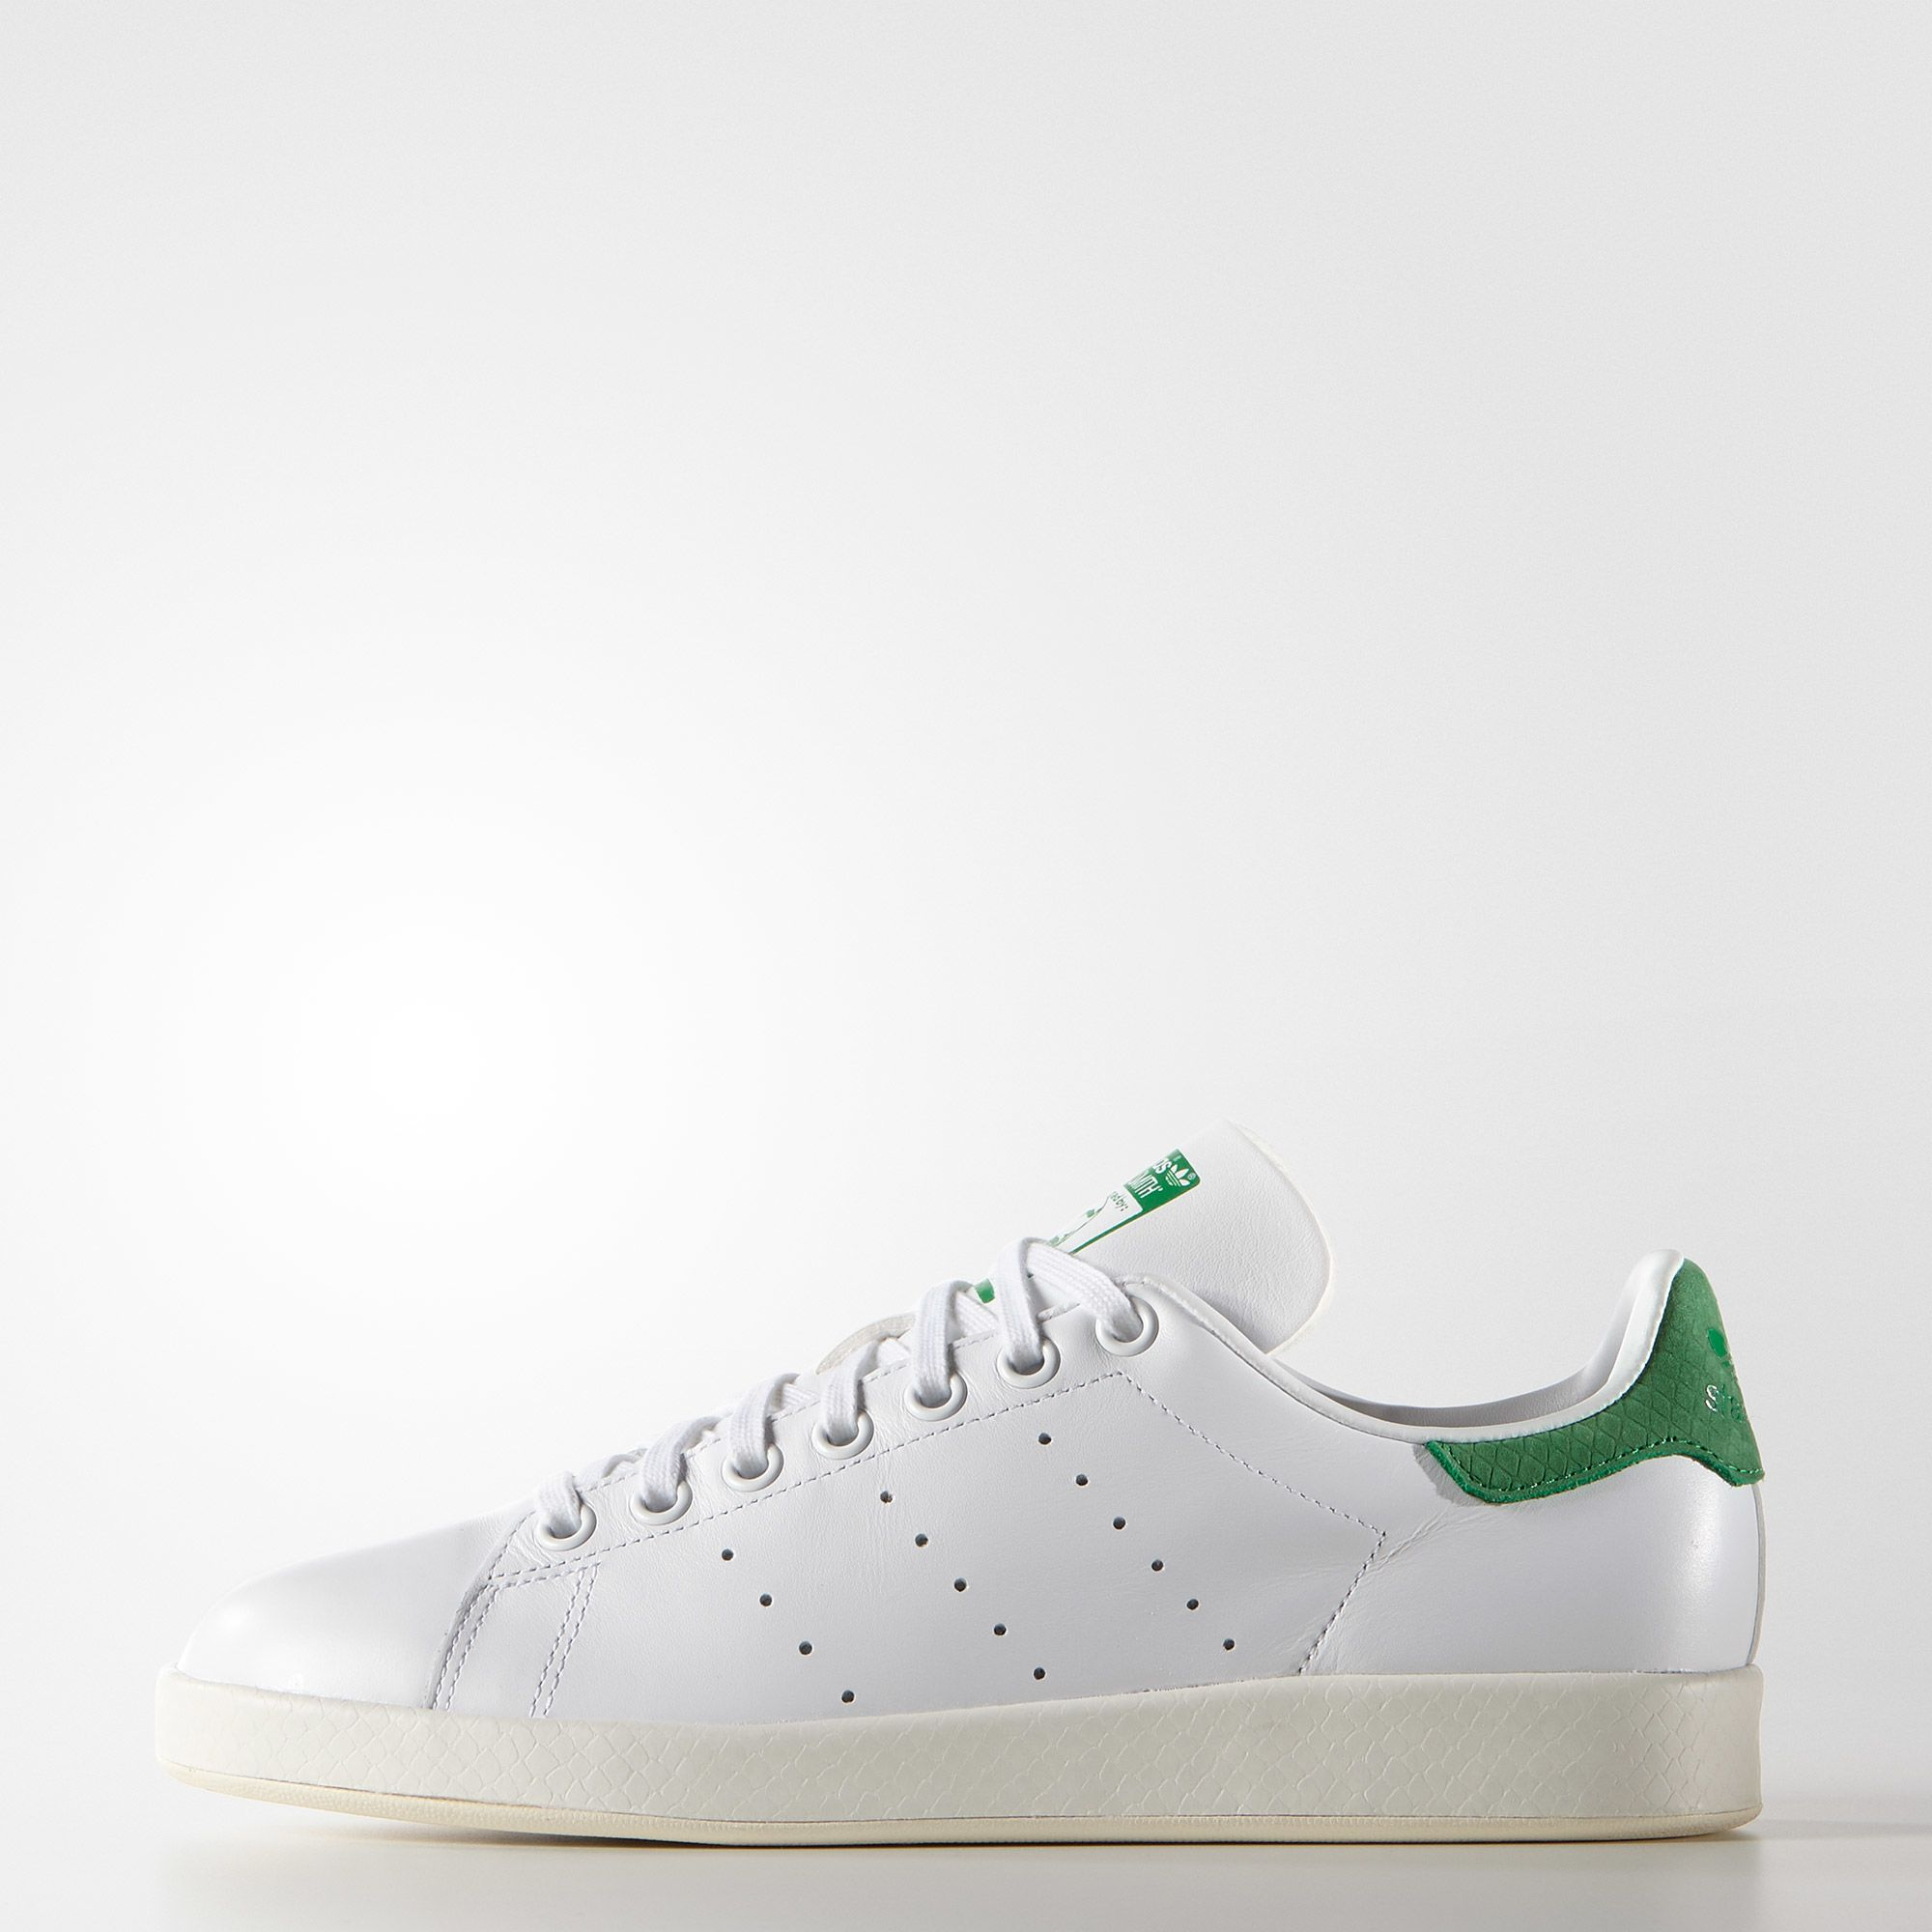 Stan smith femme luxe